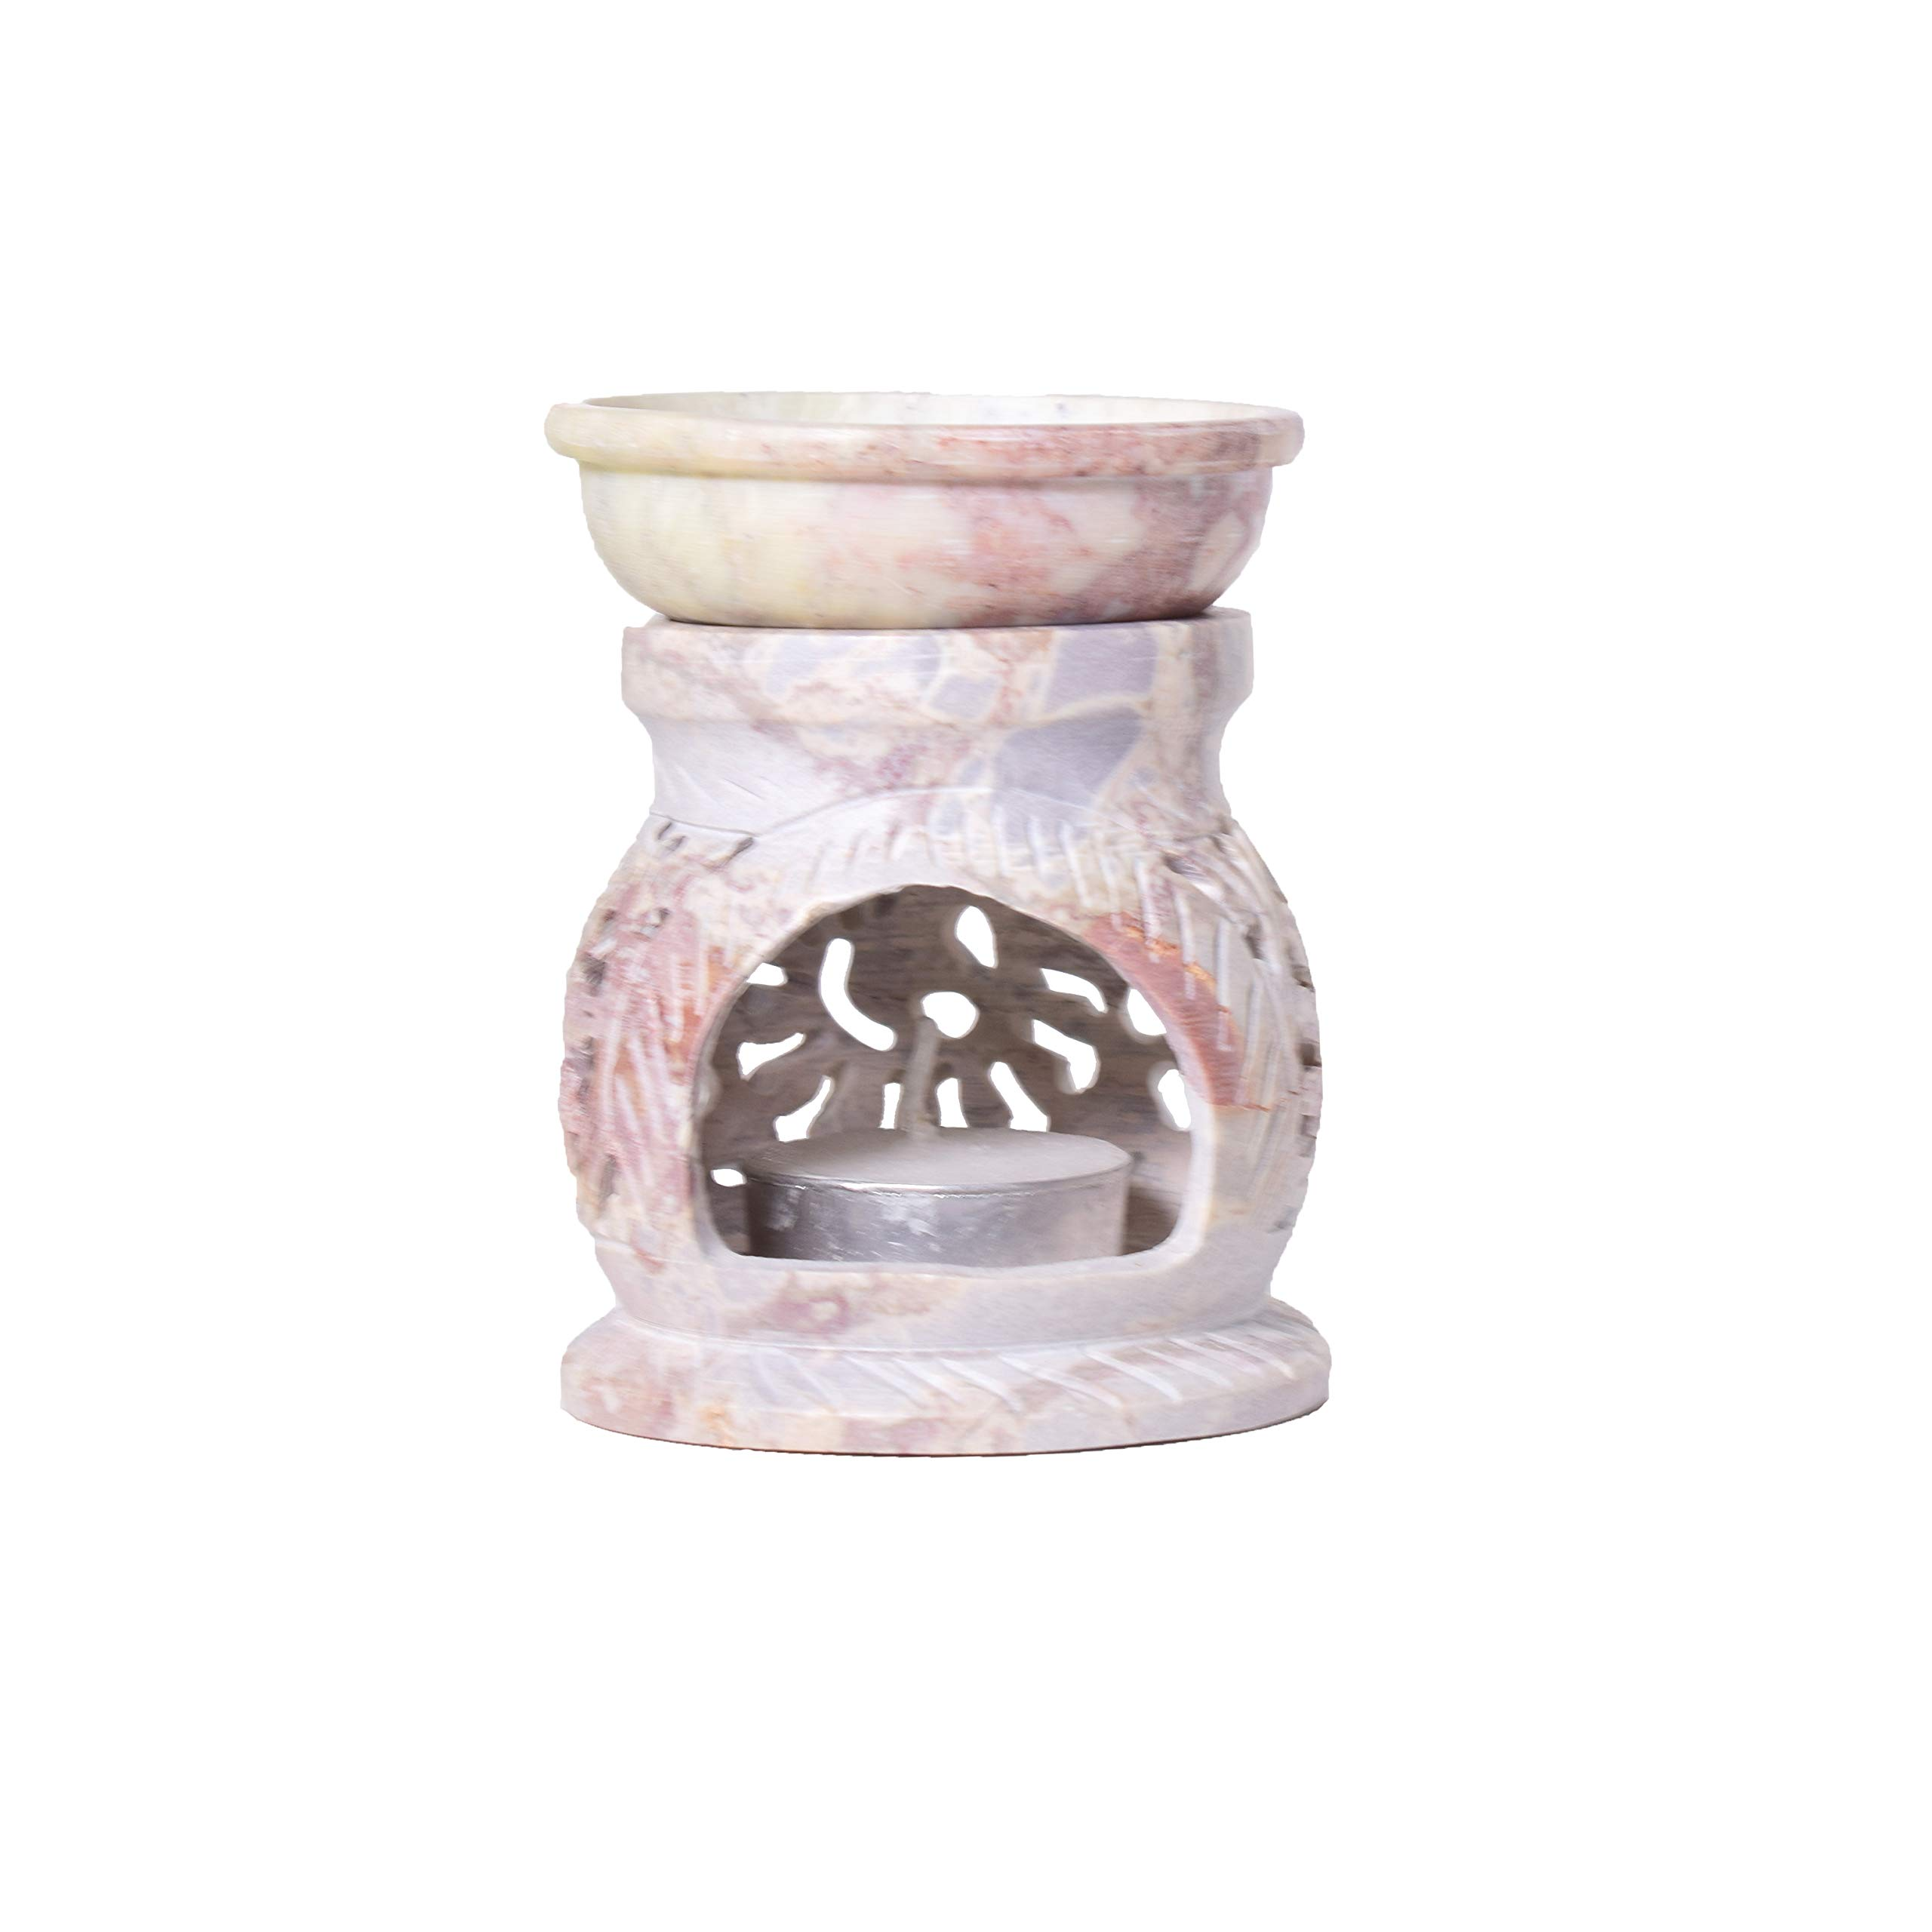 Living Room /& Office. Artistic India Soapstone Tealight Candle Holder Sphere,4,Shaped with Intricate Tendril Openwork-Table Decorative Candle Holders for Home